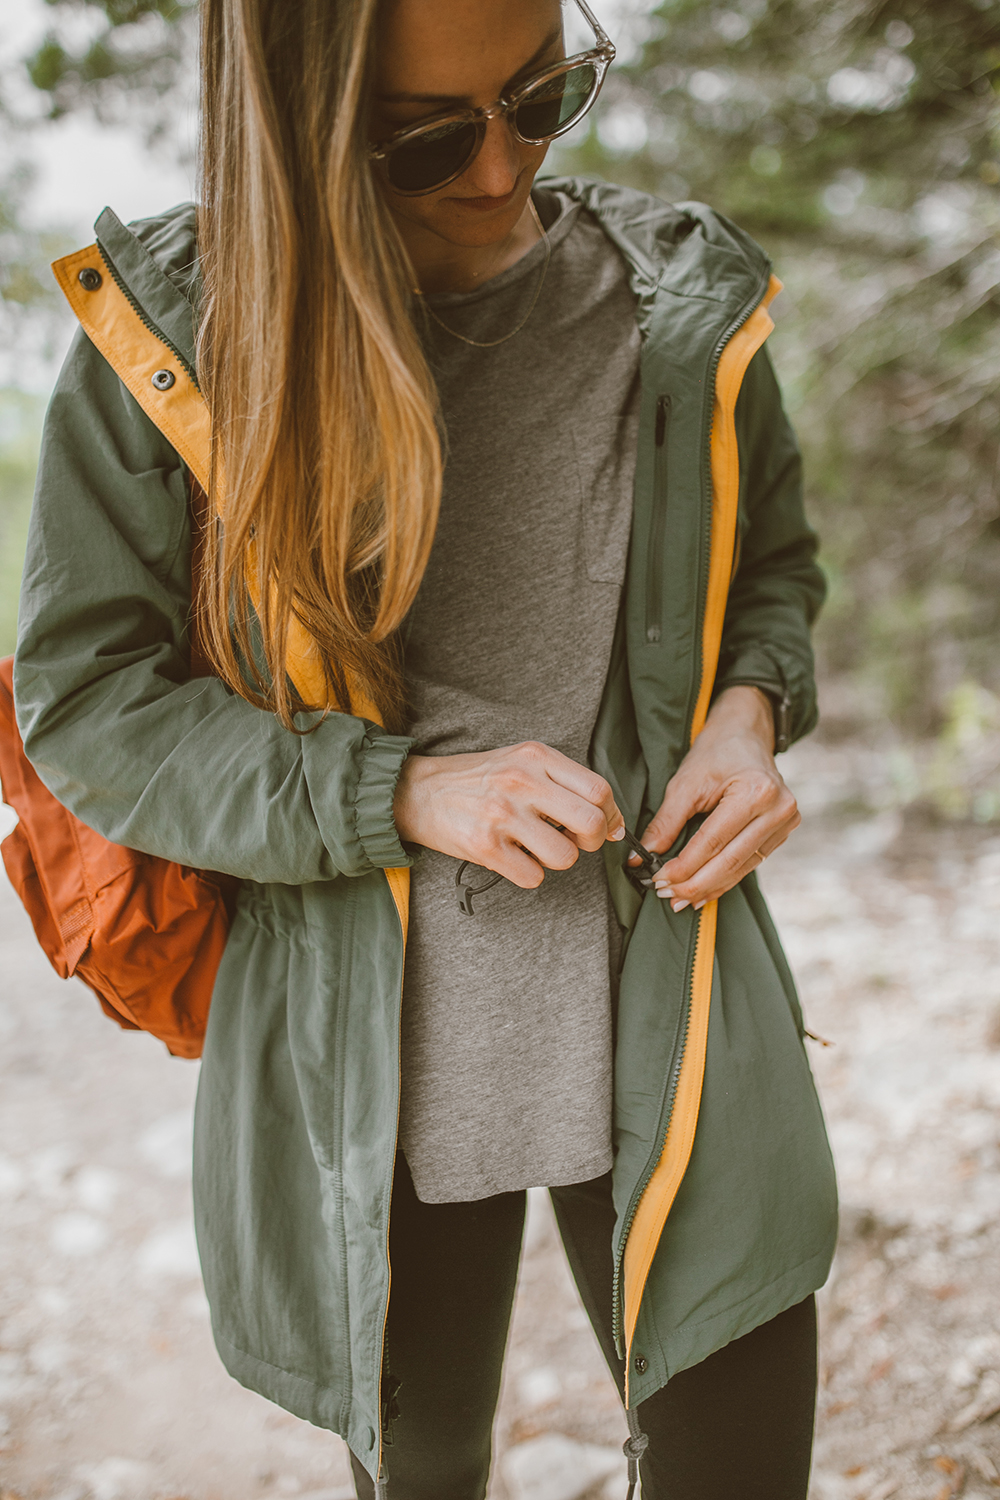 livvyland-blog-olivia-watson-austin-texas-greenbelt-hike-nature-walk-patagonia-skyforest-green-parka-1